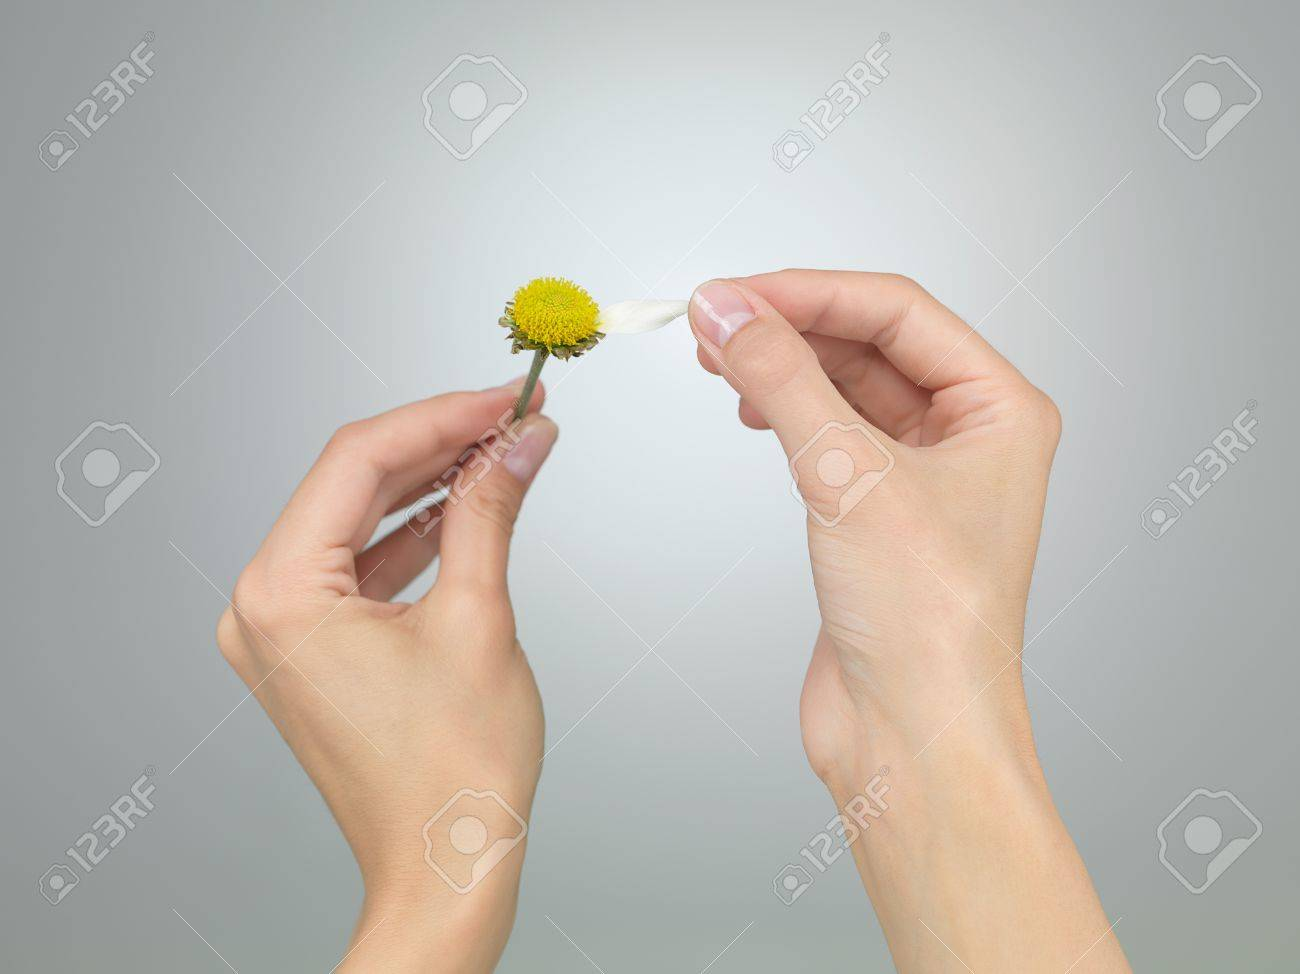 female hands puling the last petal from a daisy on grey gradient background Stock Photo - 17853171